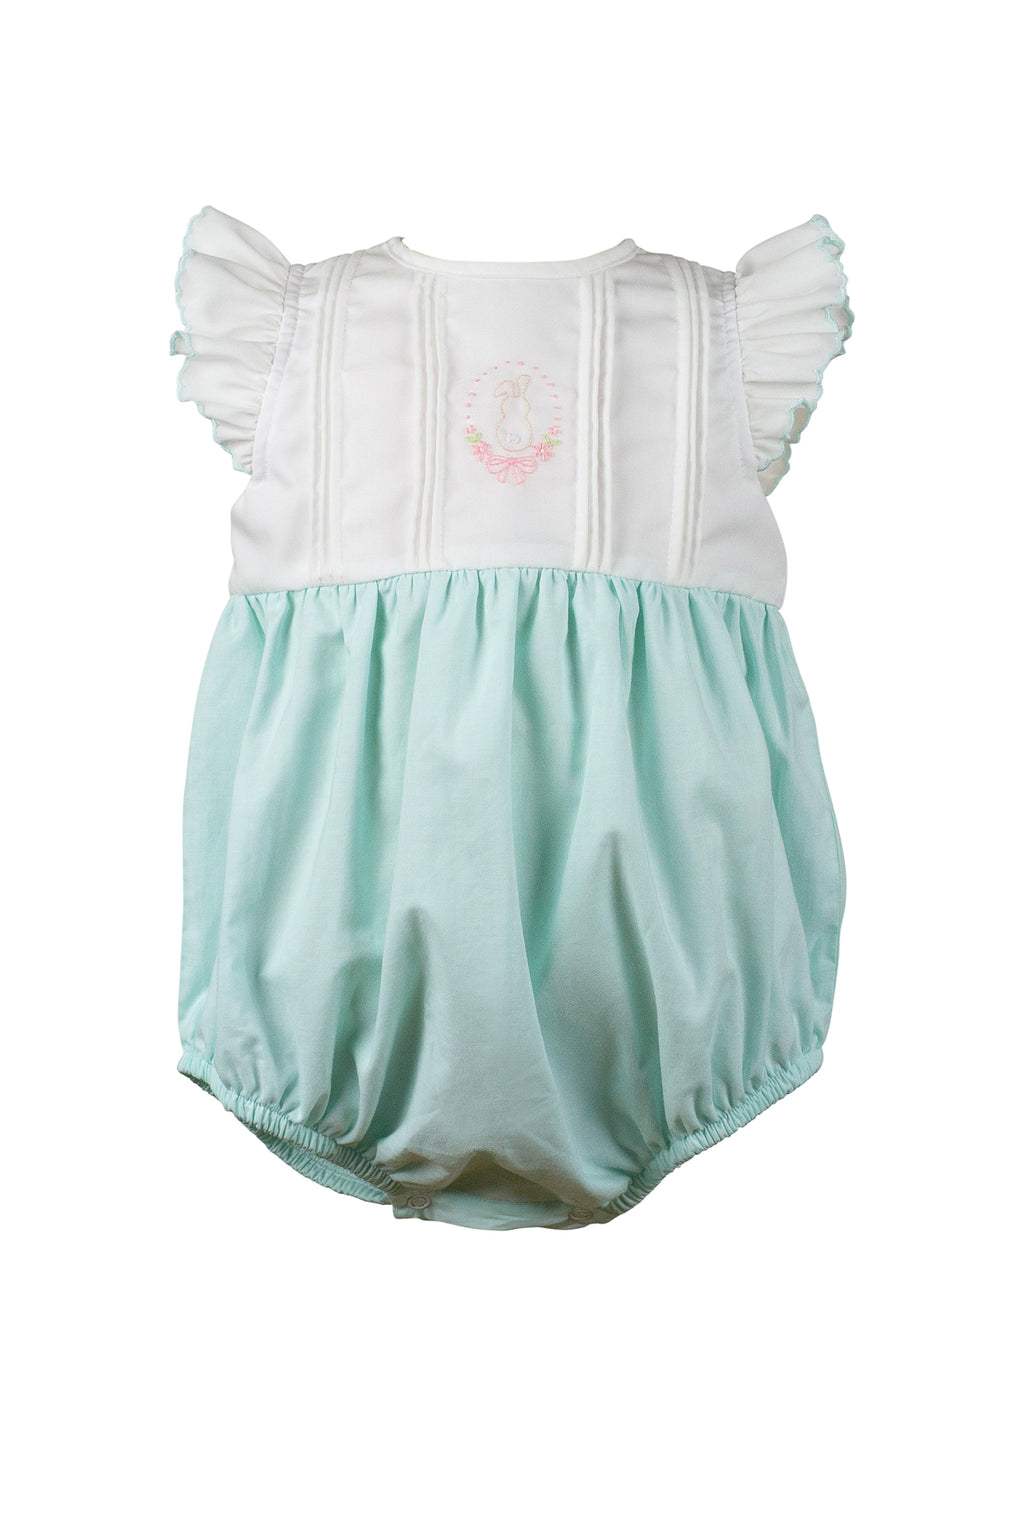 Thumper Mint Girl Bubble - Born Childrens Boutique